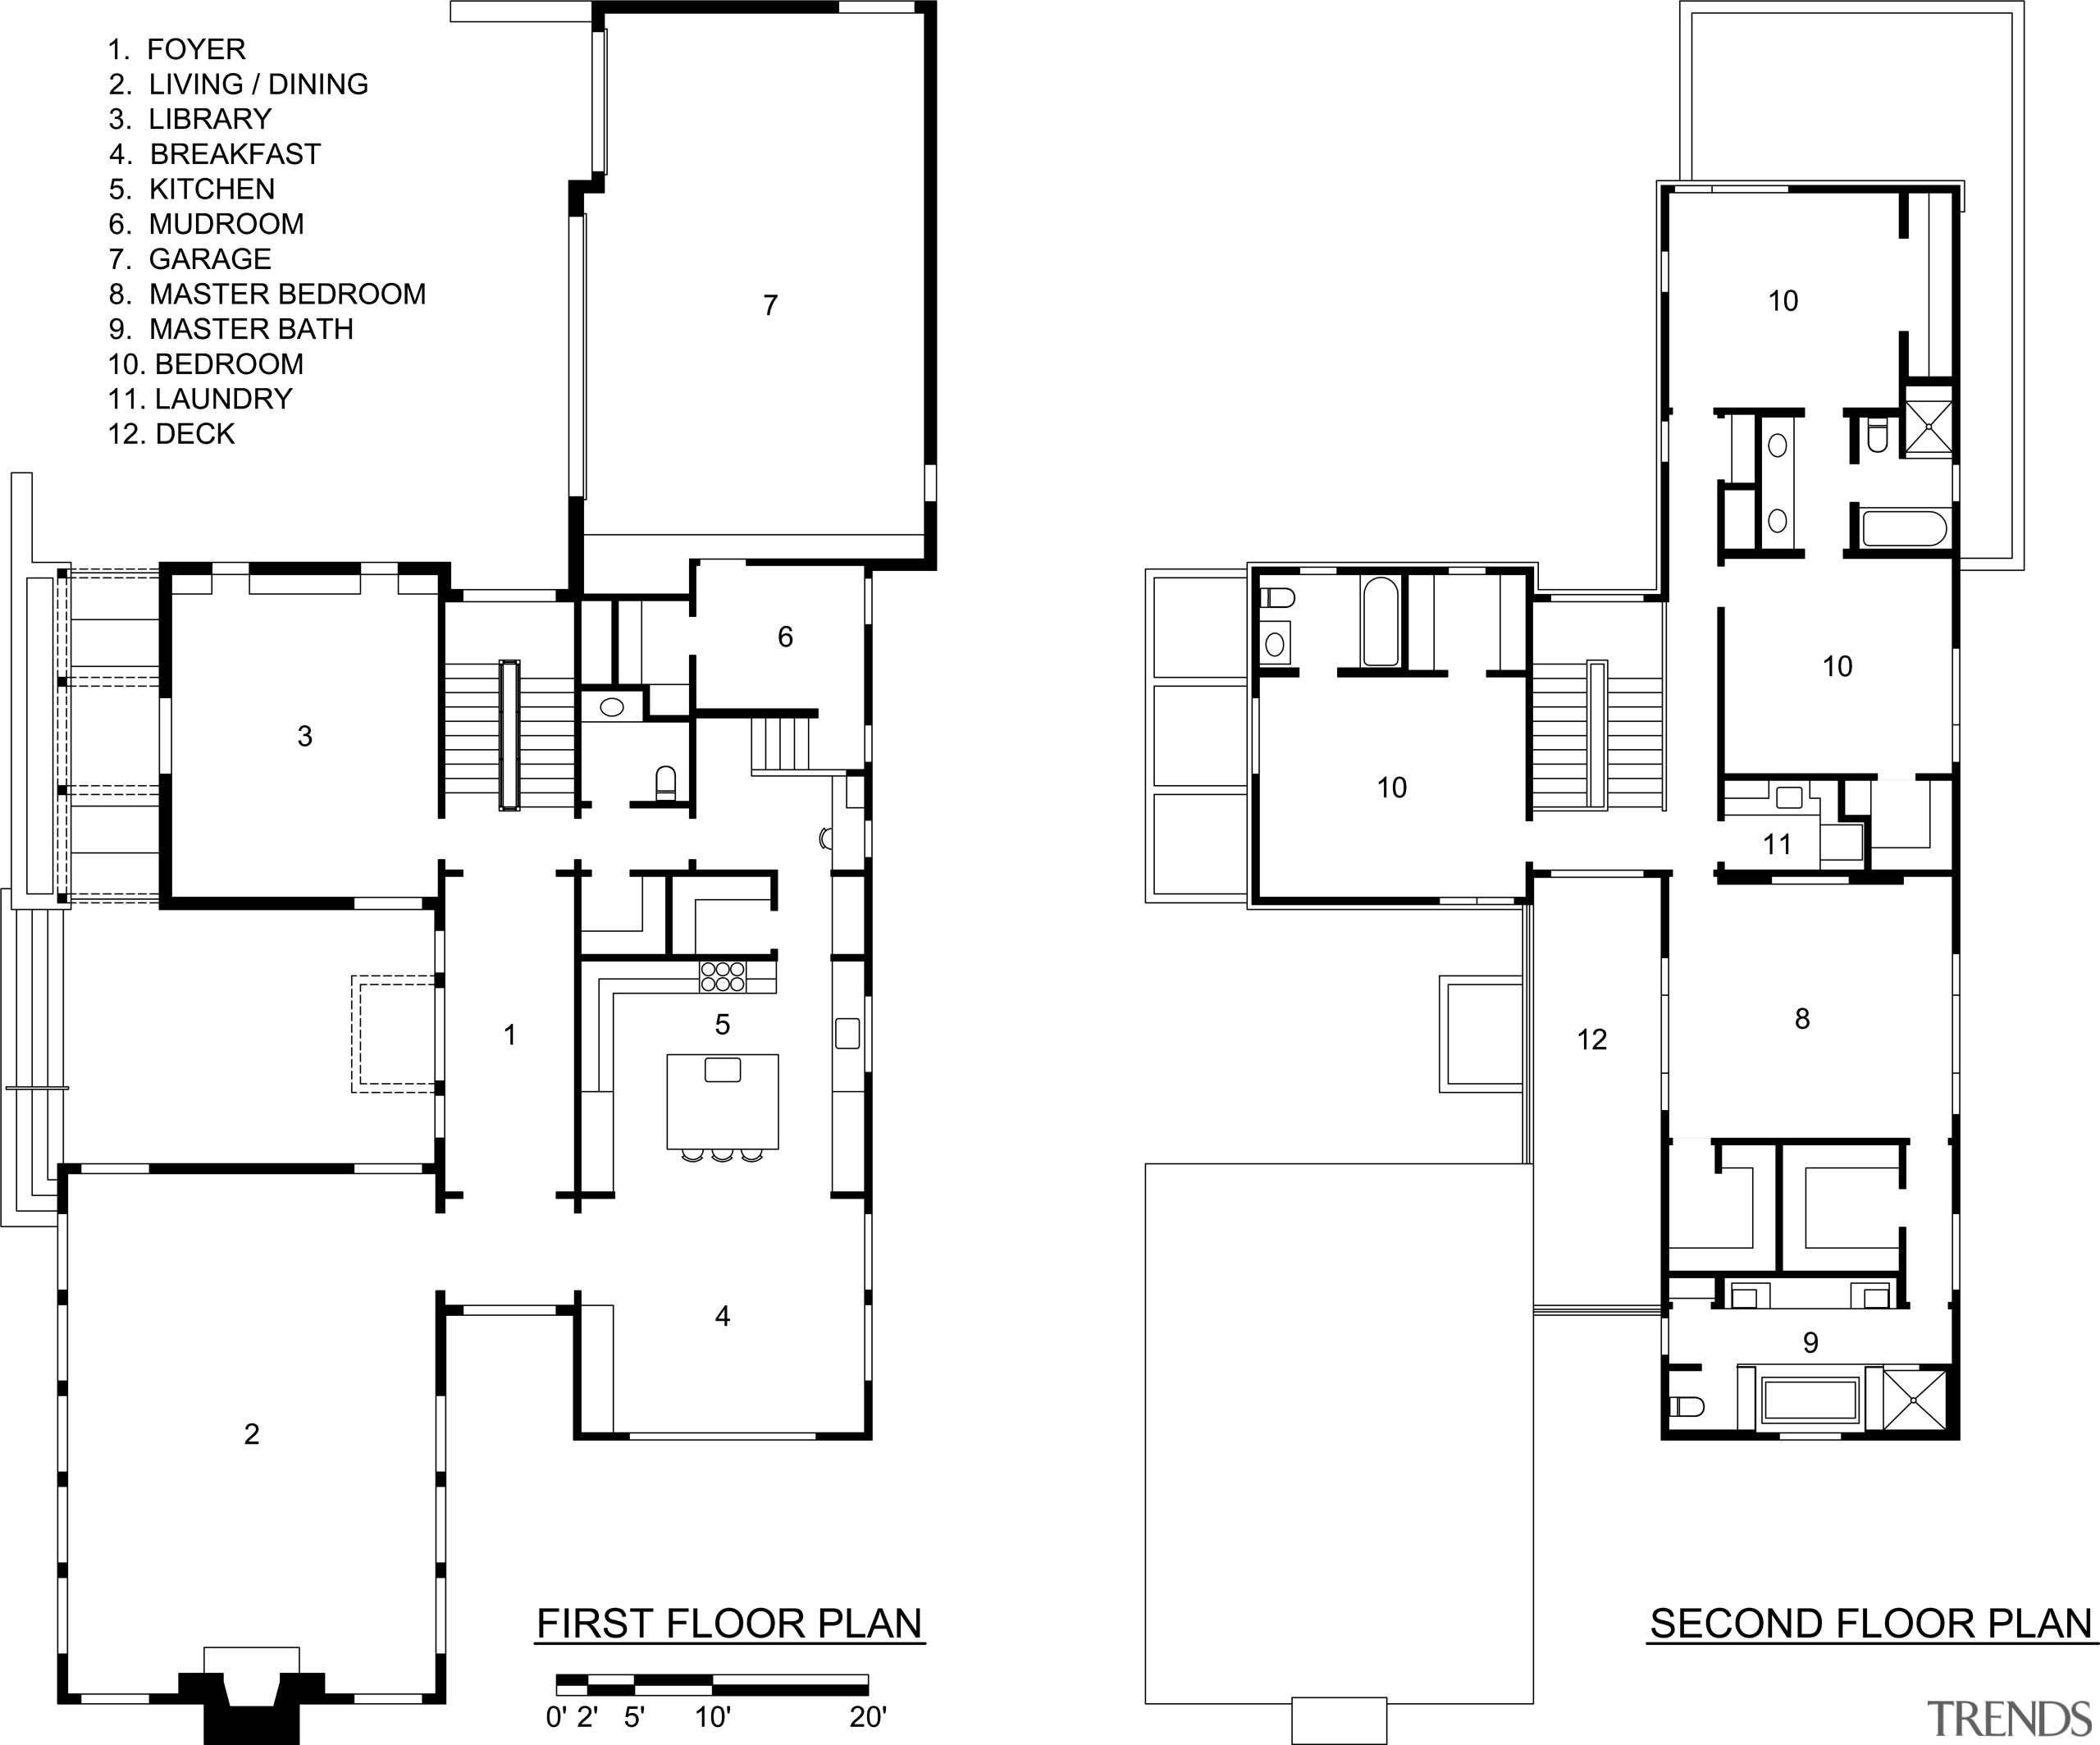 floor plan complete with legend - floor plan architecture, area, black and white, design, diagram, drawing, floor plan, font, line, product design, square, technical drawing, text, white